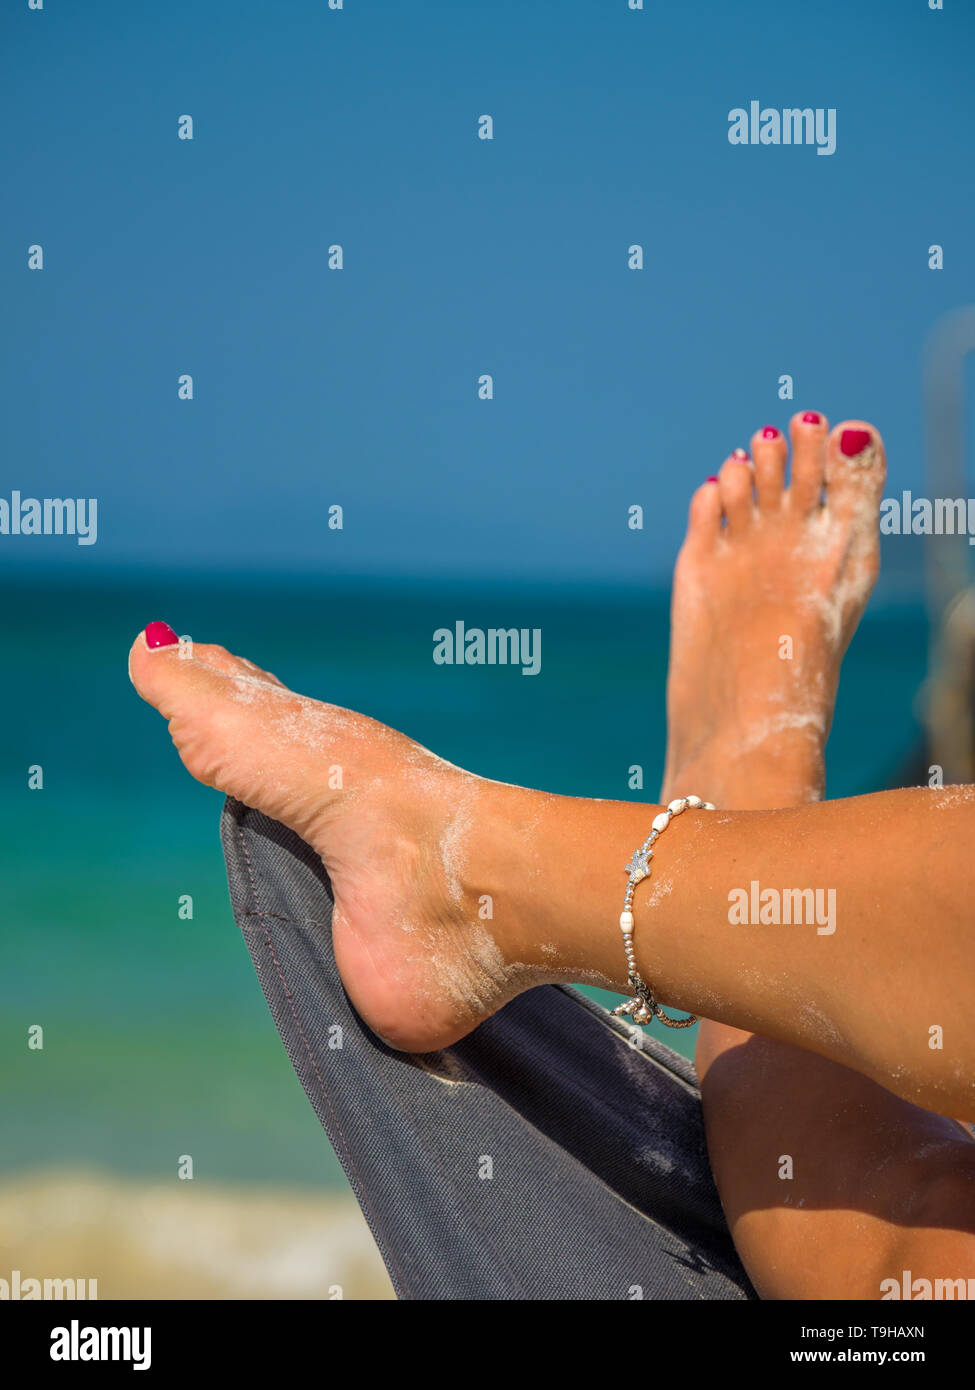 Legs of a woman at the beach - Stock Image